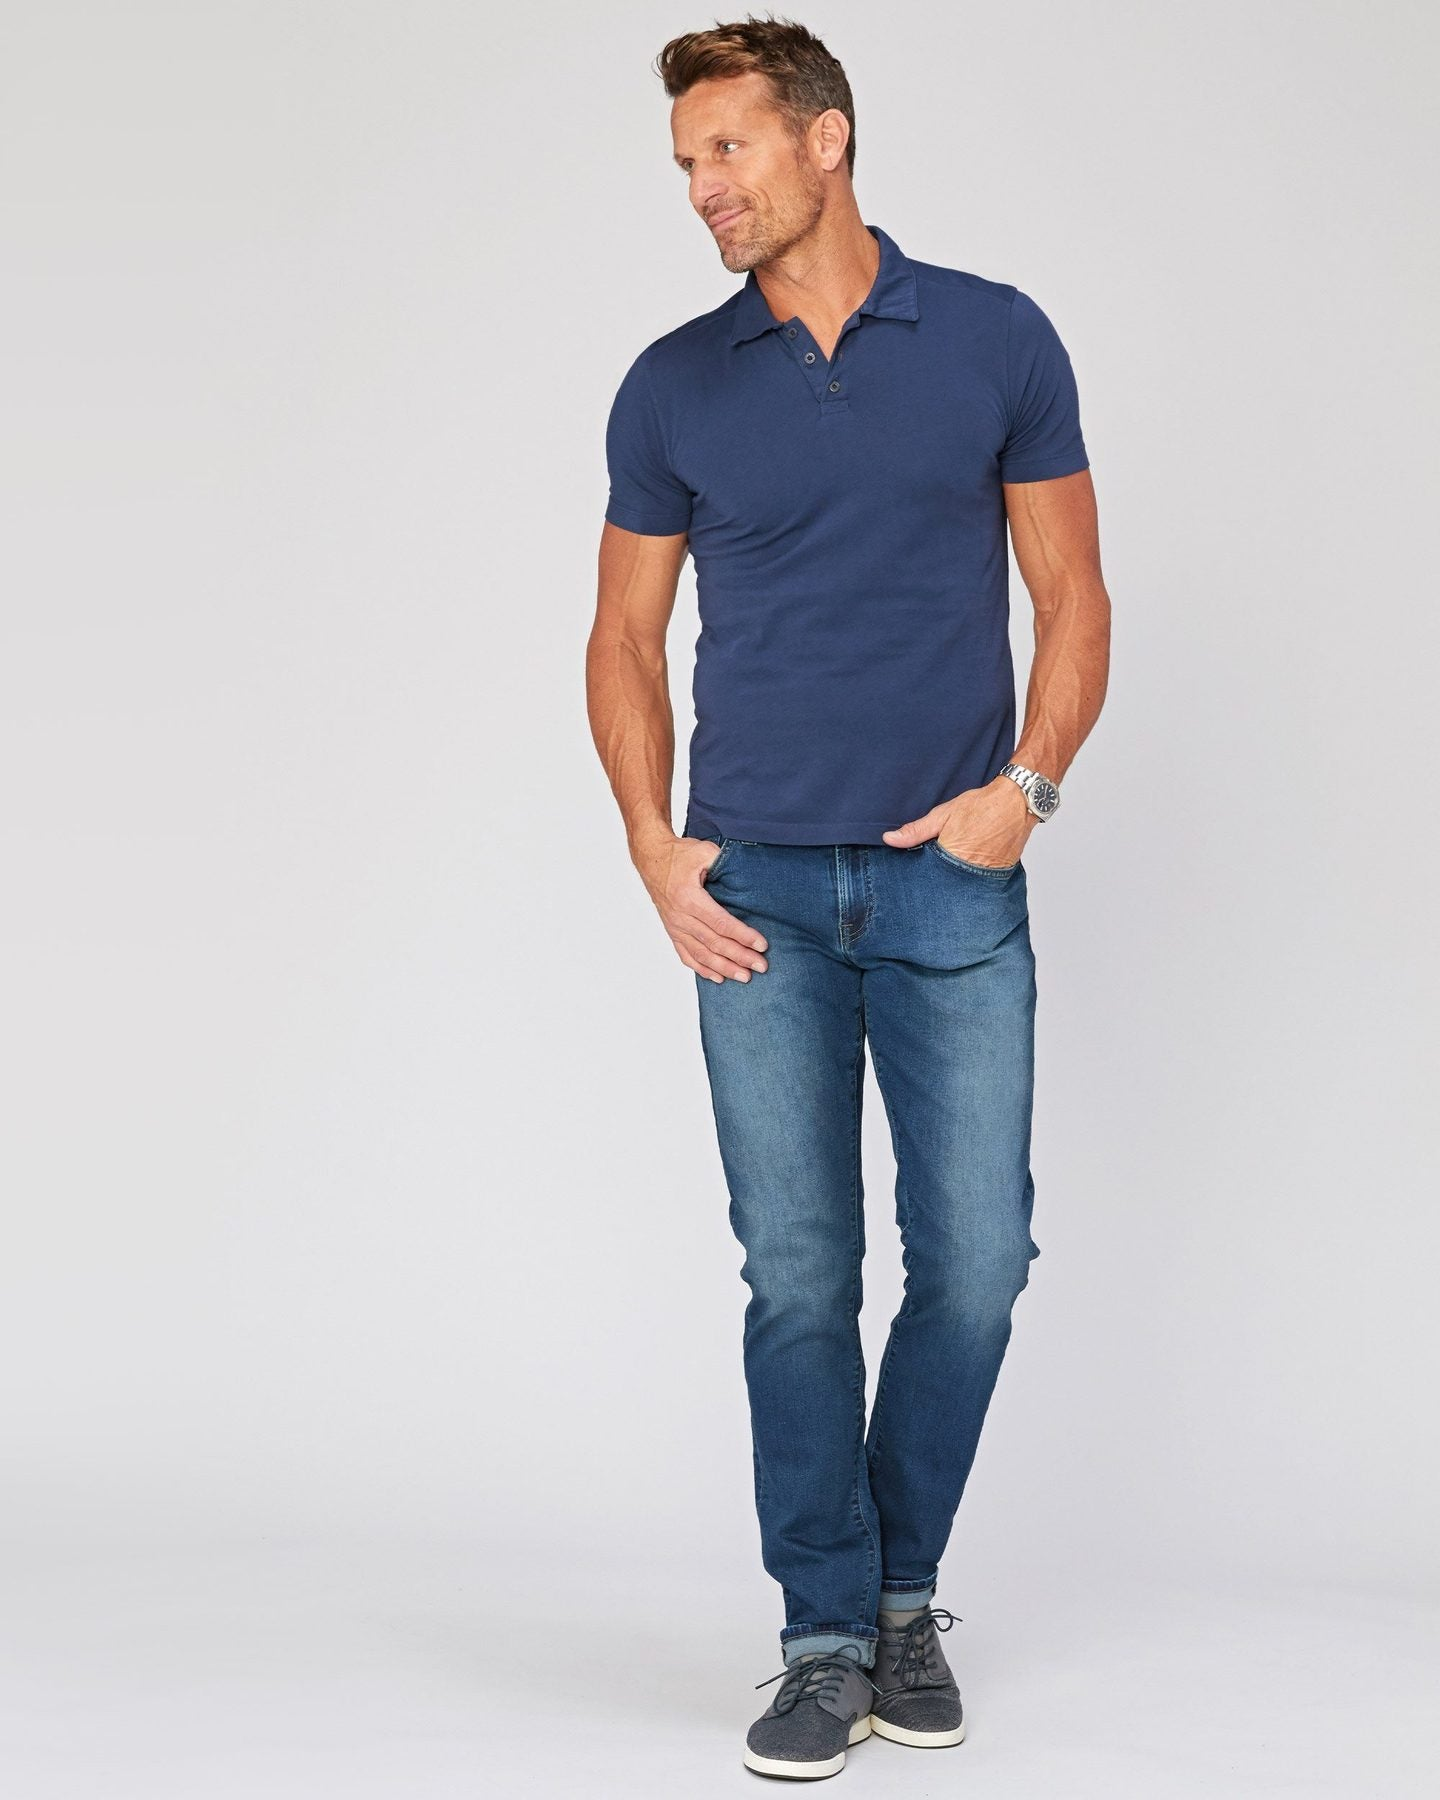 ROCKER SLIM FIT BIG DRAKES FLEX, 4-Year